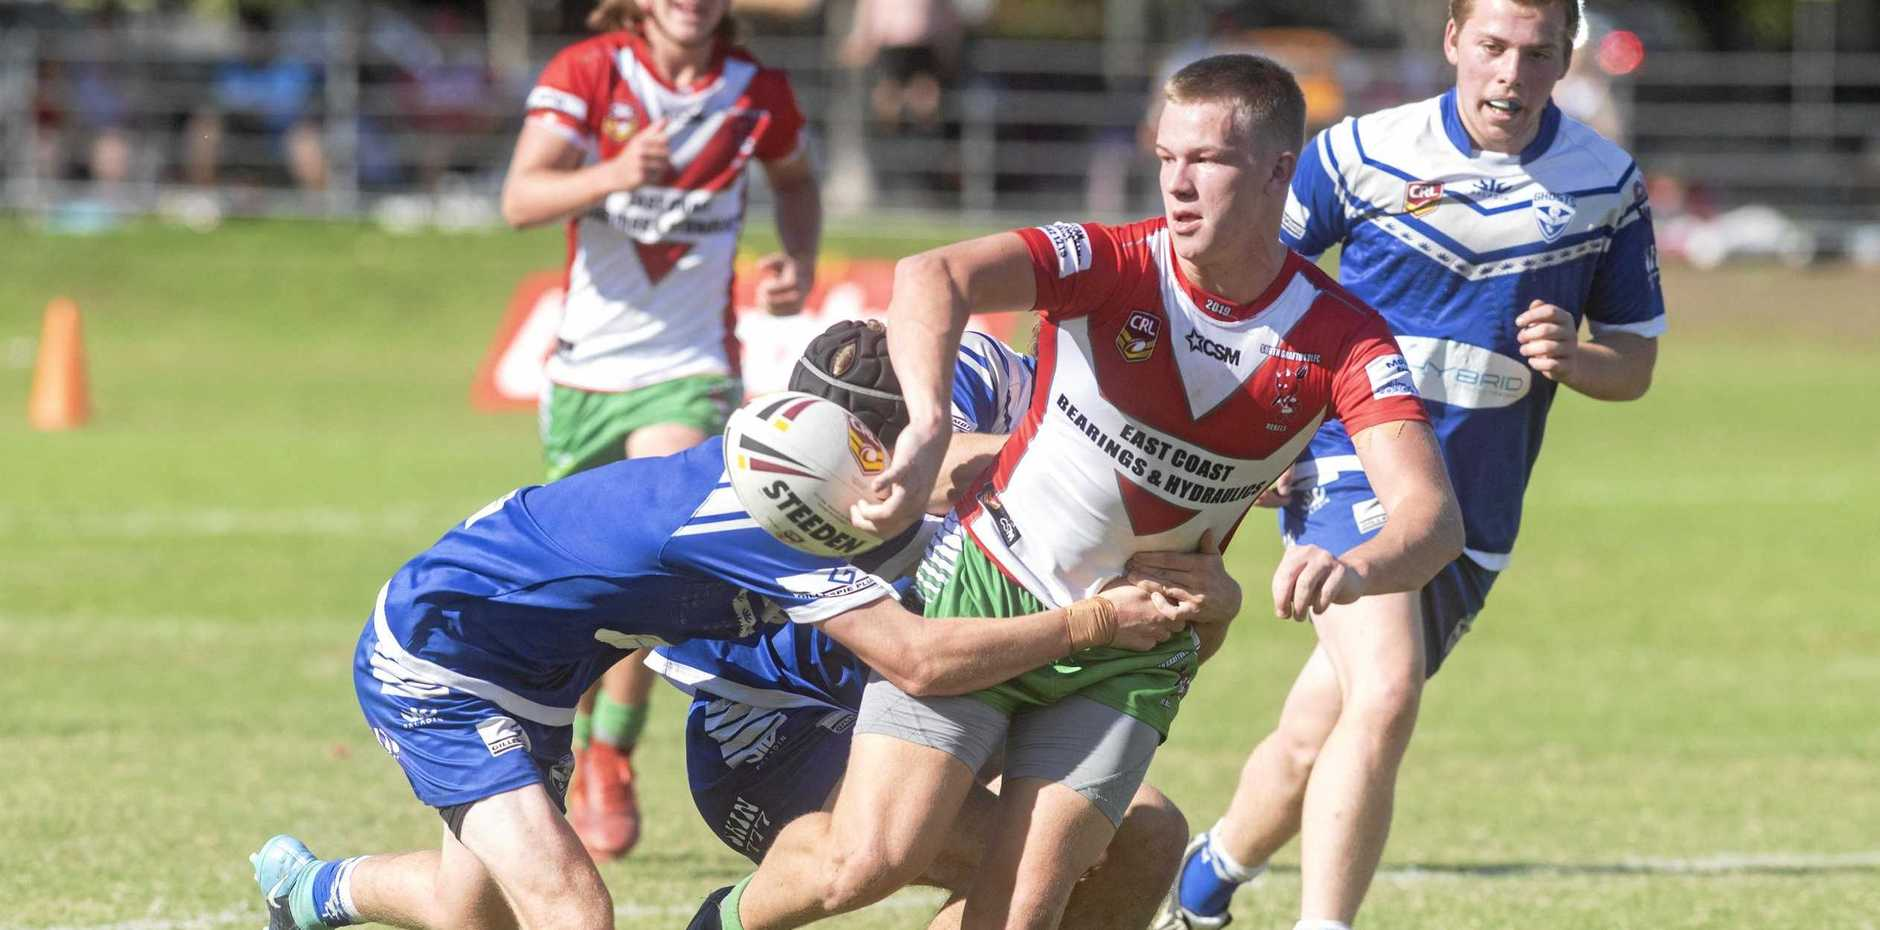 SOLID FIRST TEST: South Grafton Rebels Mike Rigg impressed coach Craig Yougjohns in his maiden start with the first grade side against the Orara Valley Axemen at McKittrick Park on Sunday.